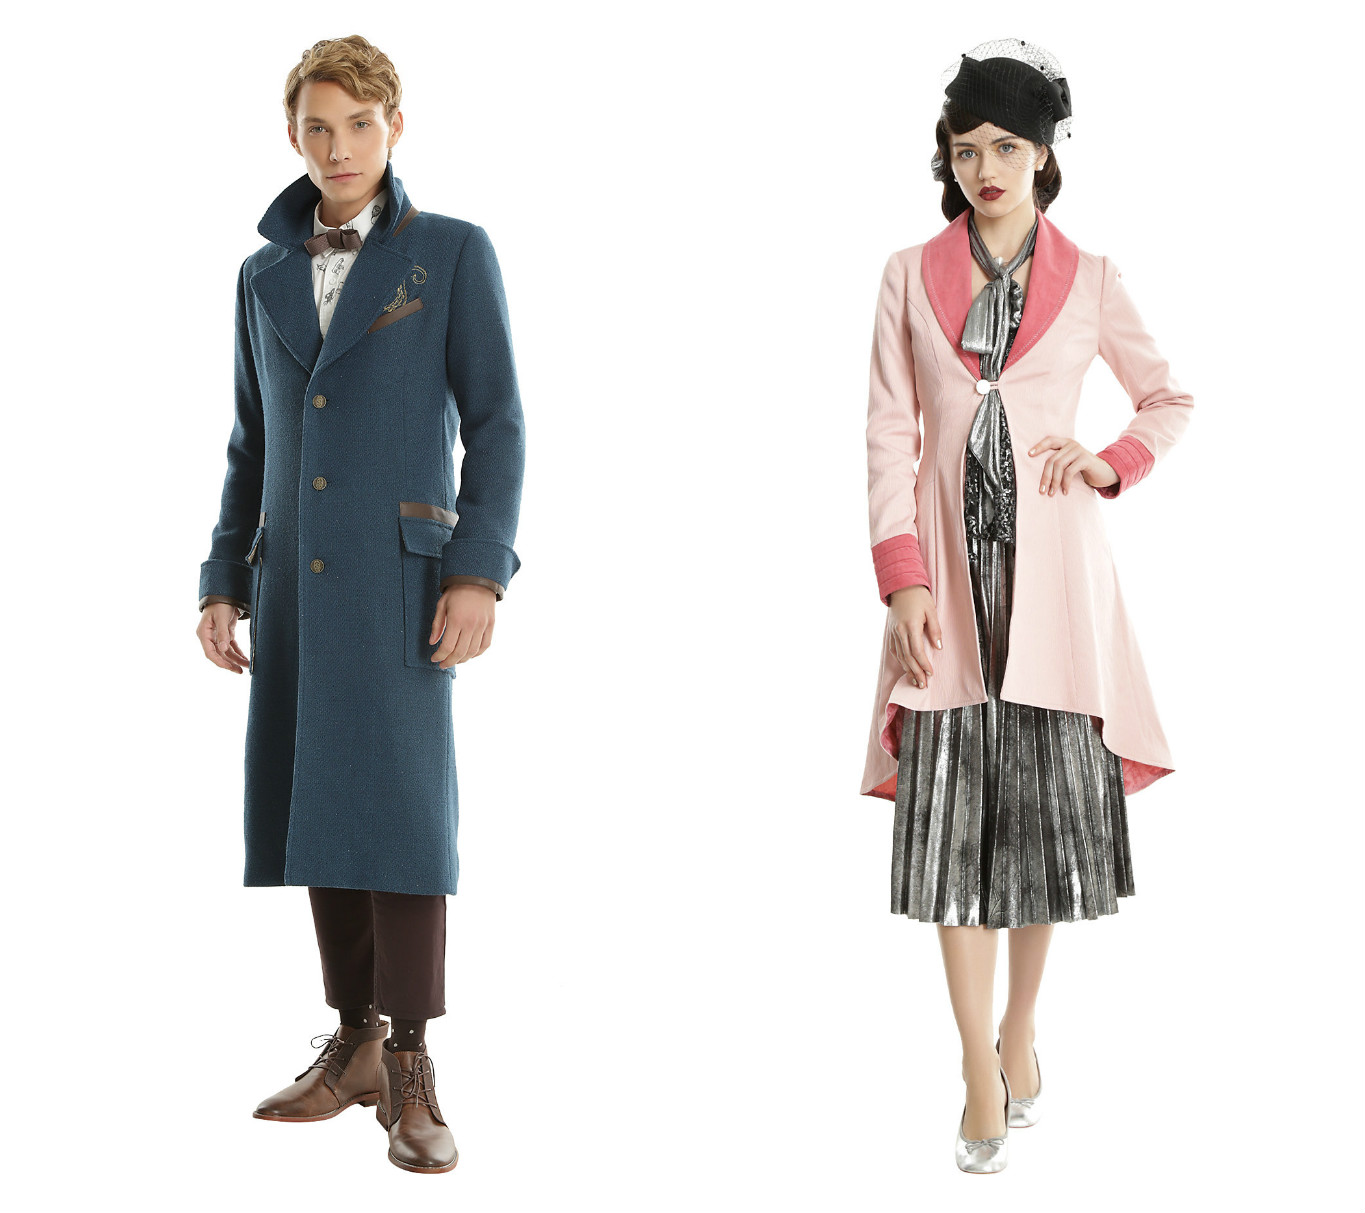 Hot Topic Just Released A Fantastic Beasts Collection And It S A